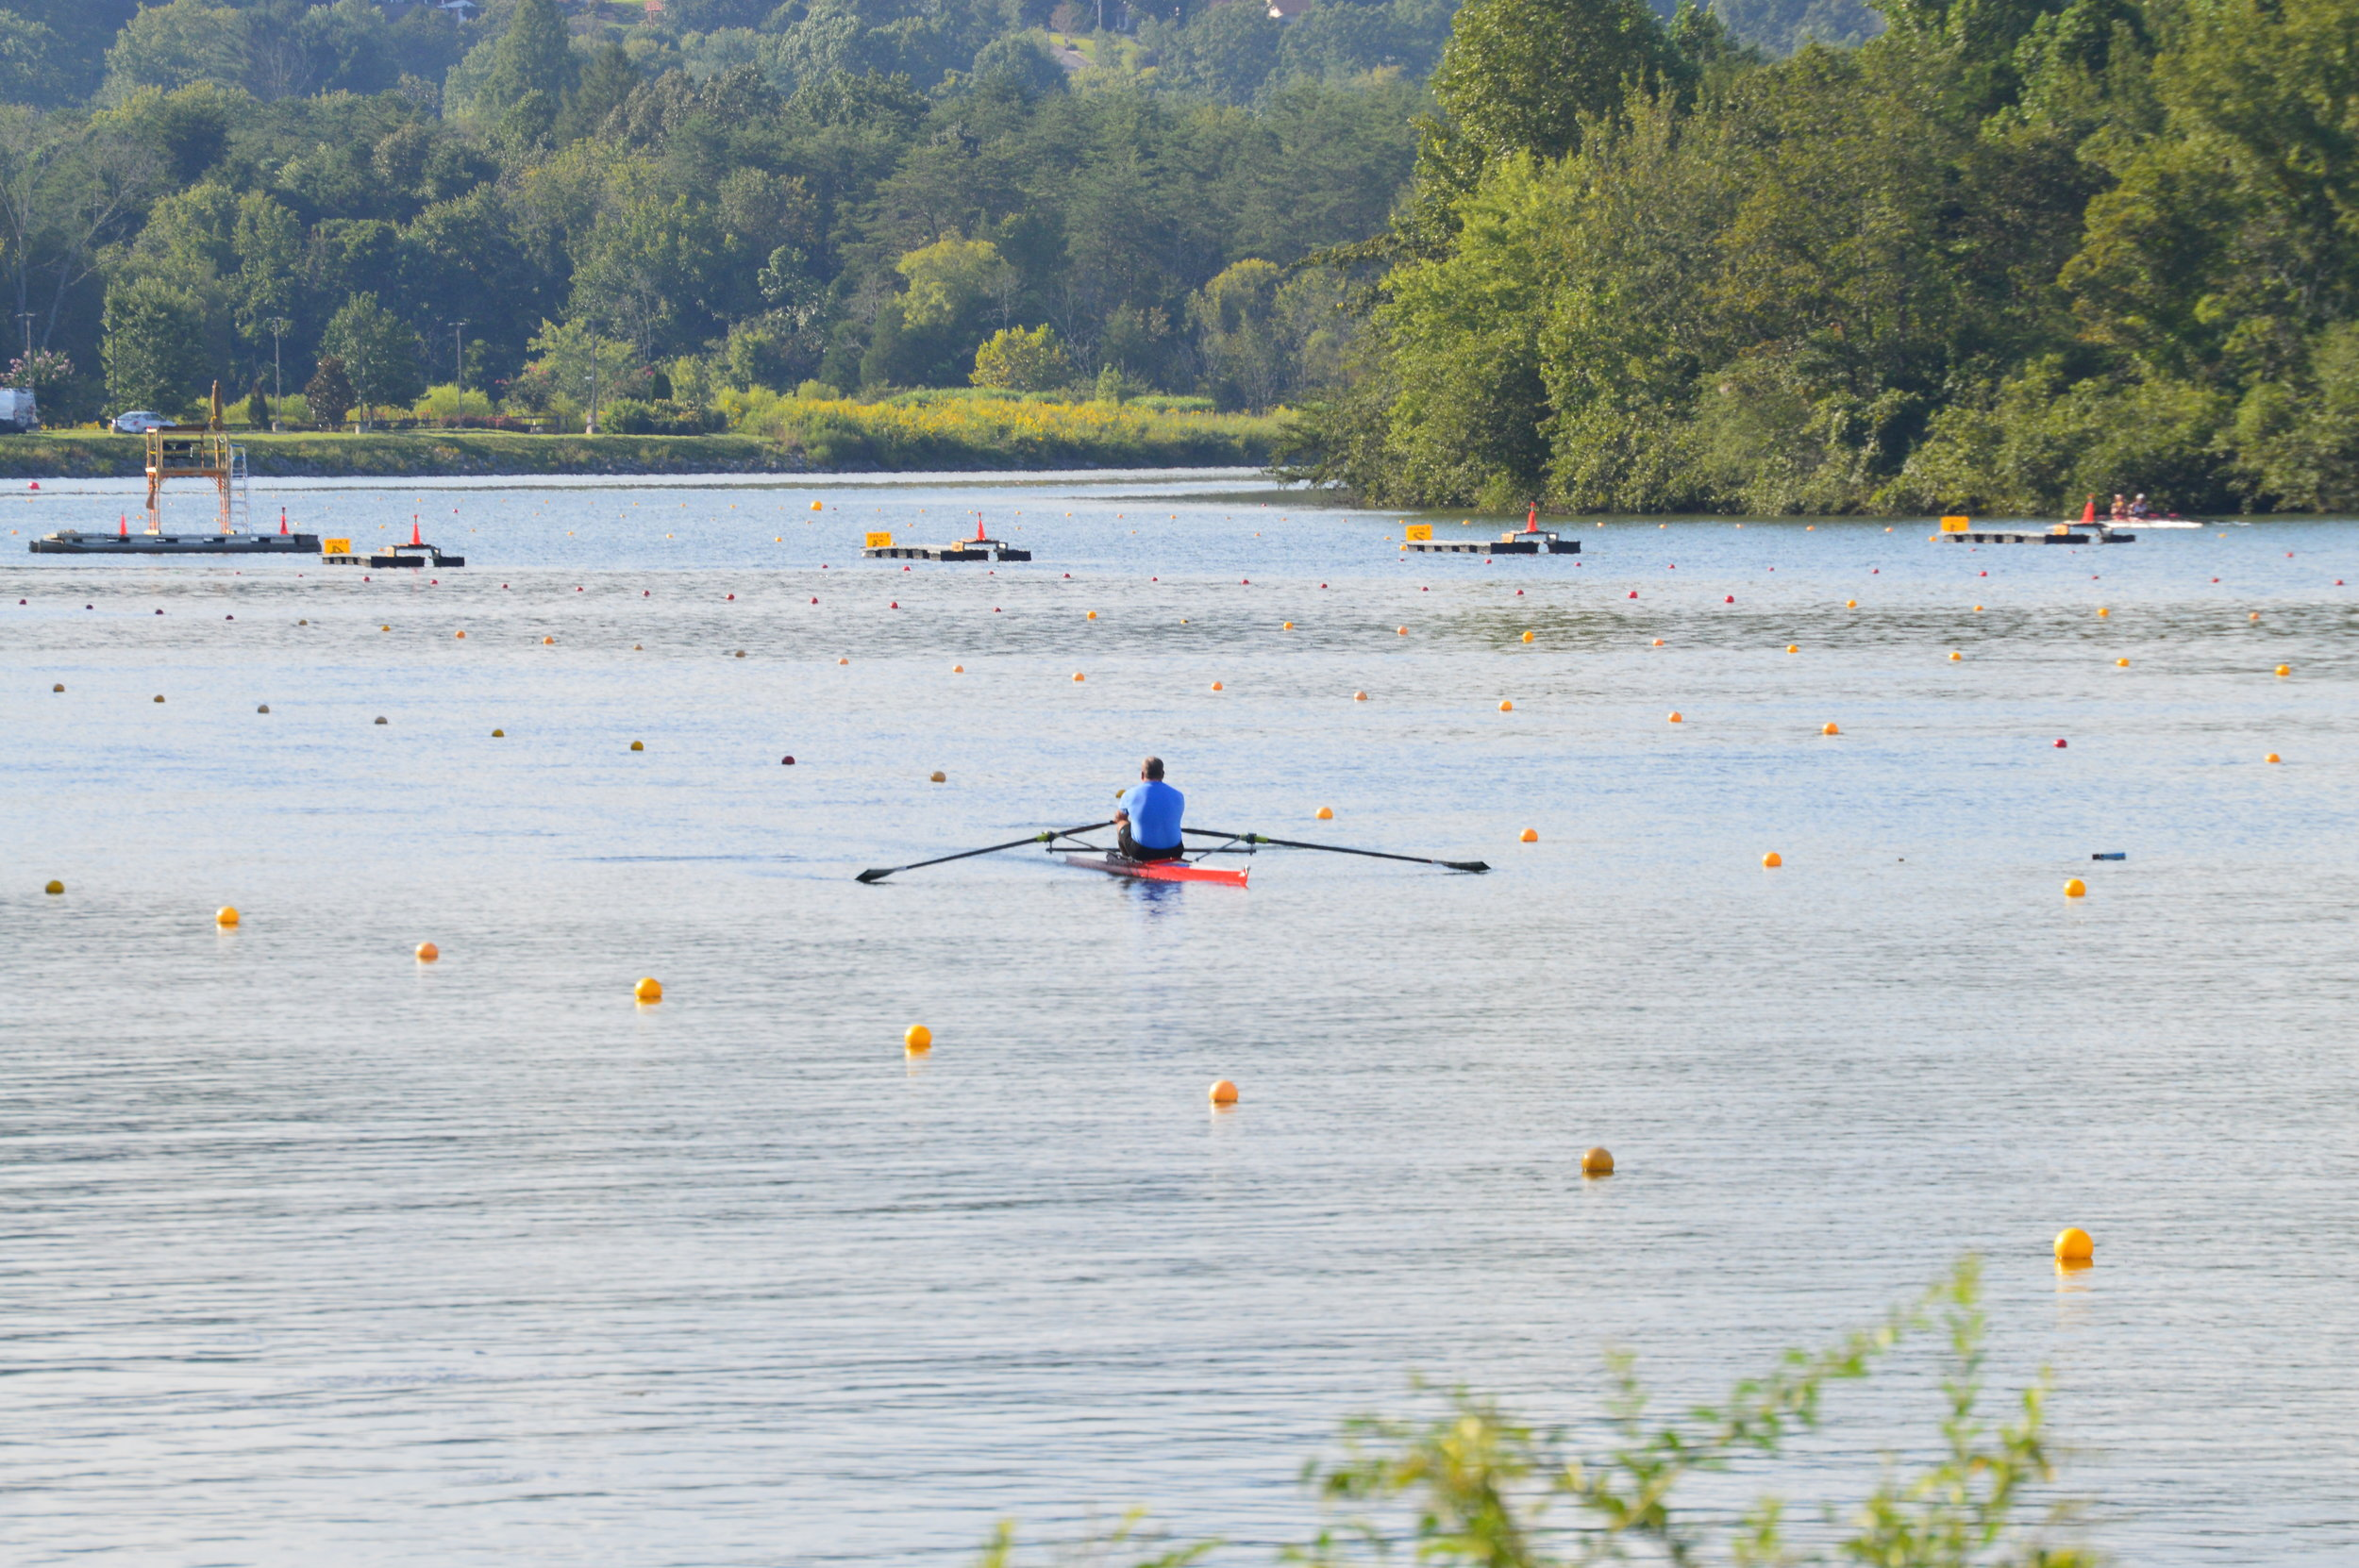 The City of Oak Ridge has been working to add a lane to the rowing venue as well as enhance viewing opportunities along the course.